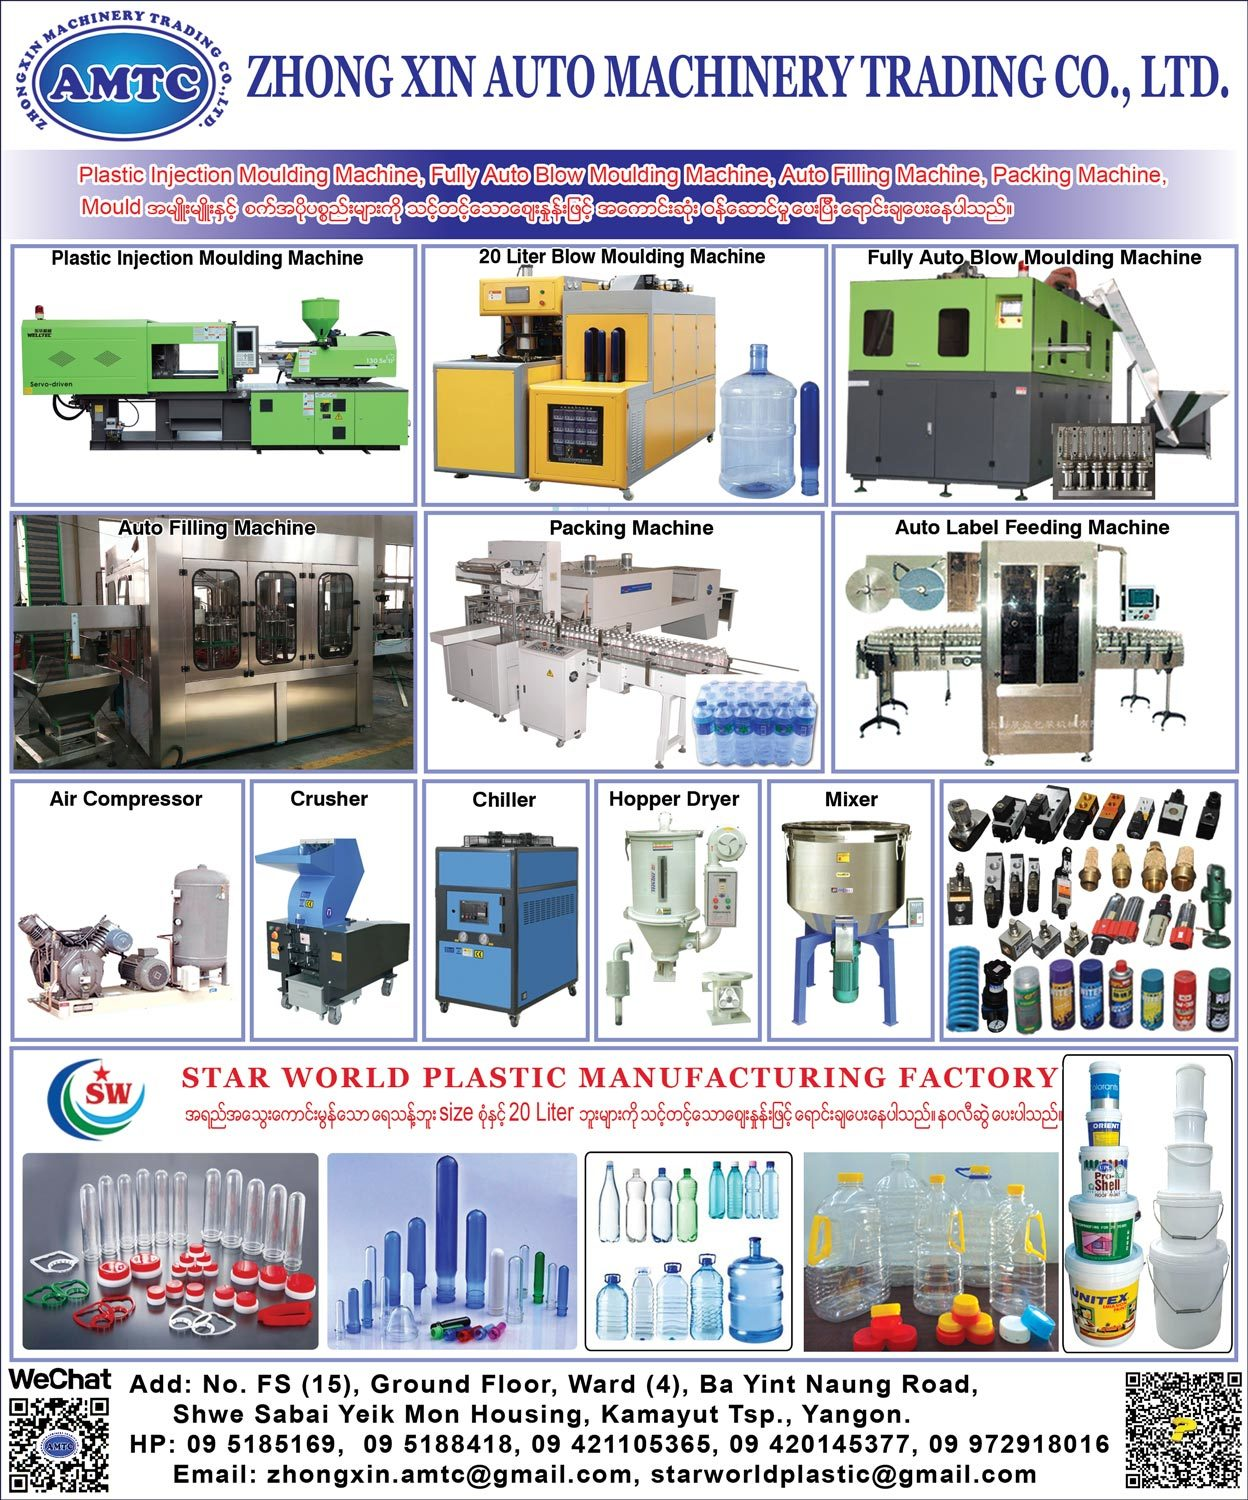 Zhong-Xin-Machinery-Trading-CoLtd-Plastic-Material-&-Products_(I)_979.jpg